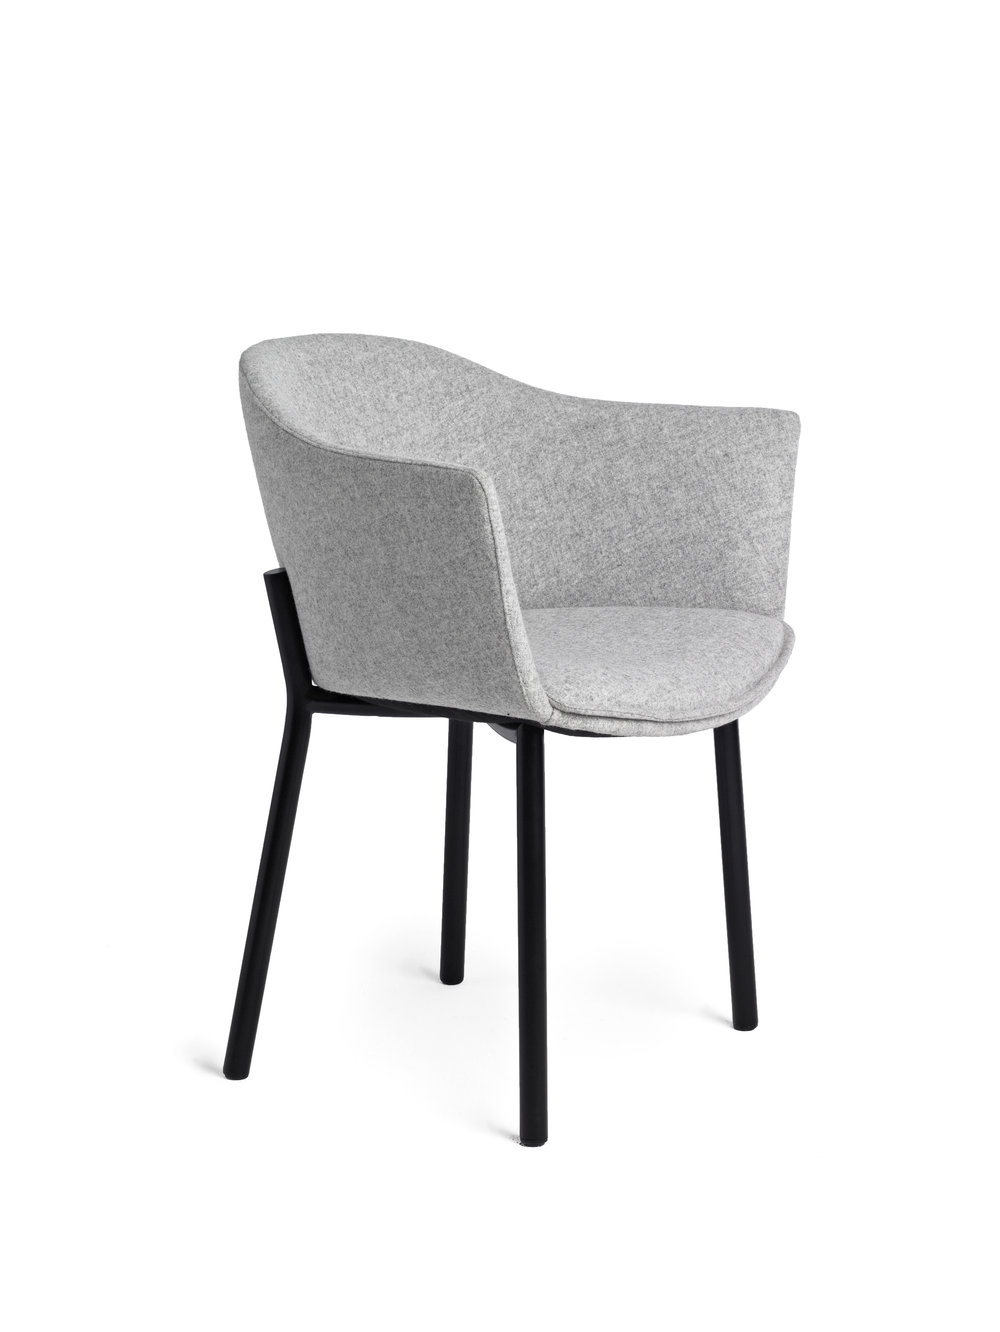 Felix Chair / Simon James for RESIDENT Product Link SPEC SHEET